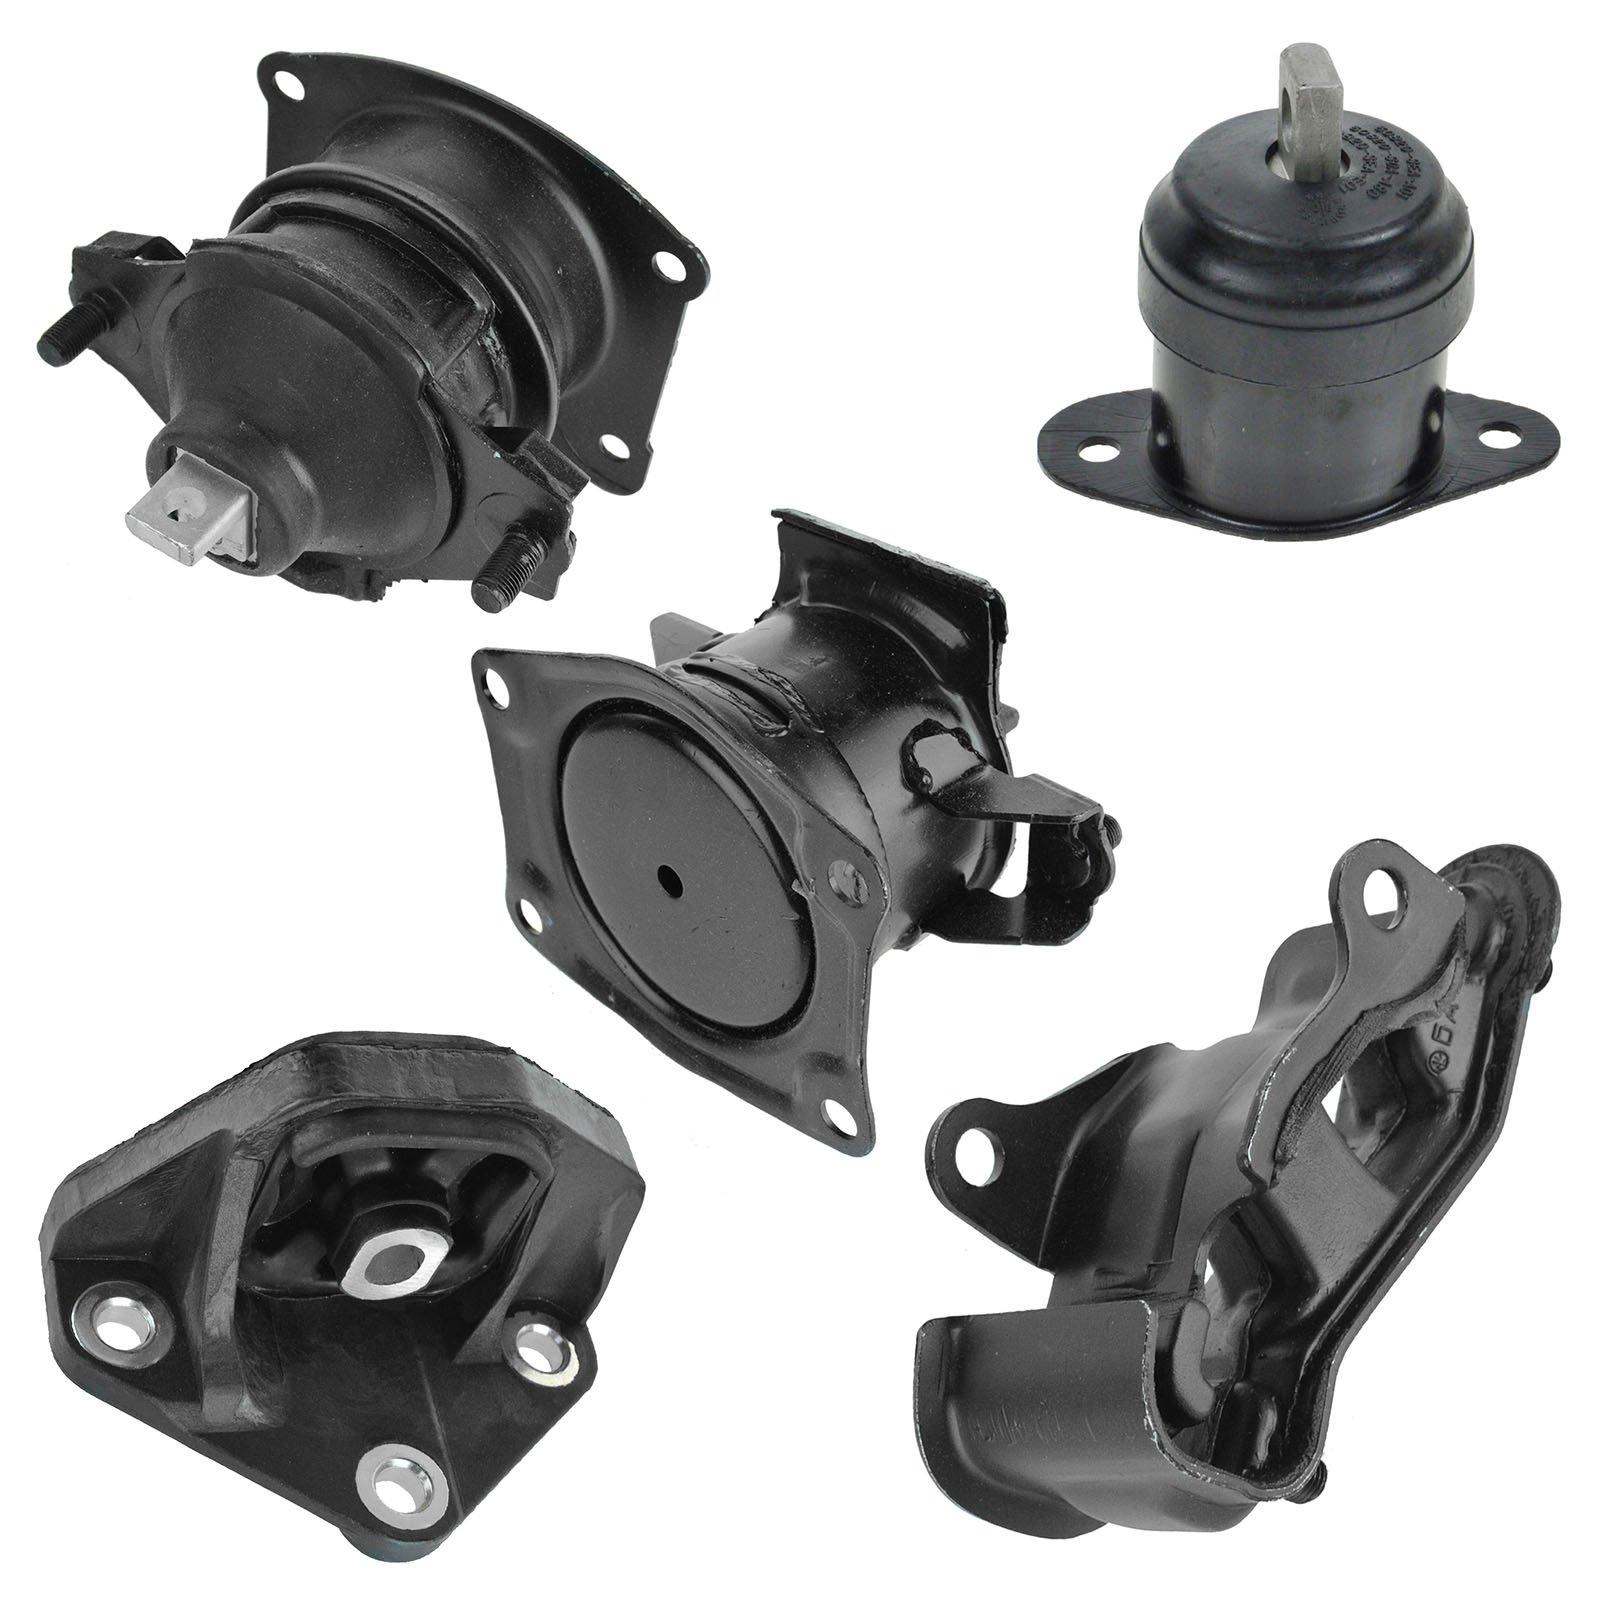 Engine Motor Transmission Mount Kit Set of 5 for 03-07 Honda Accord by 1A Auto